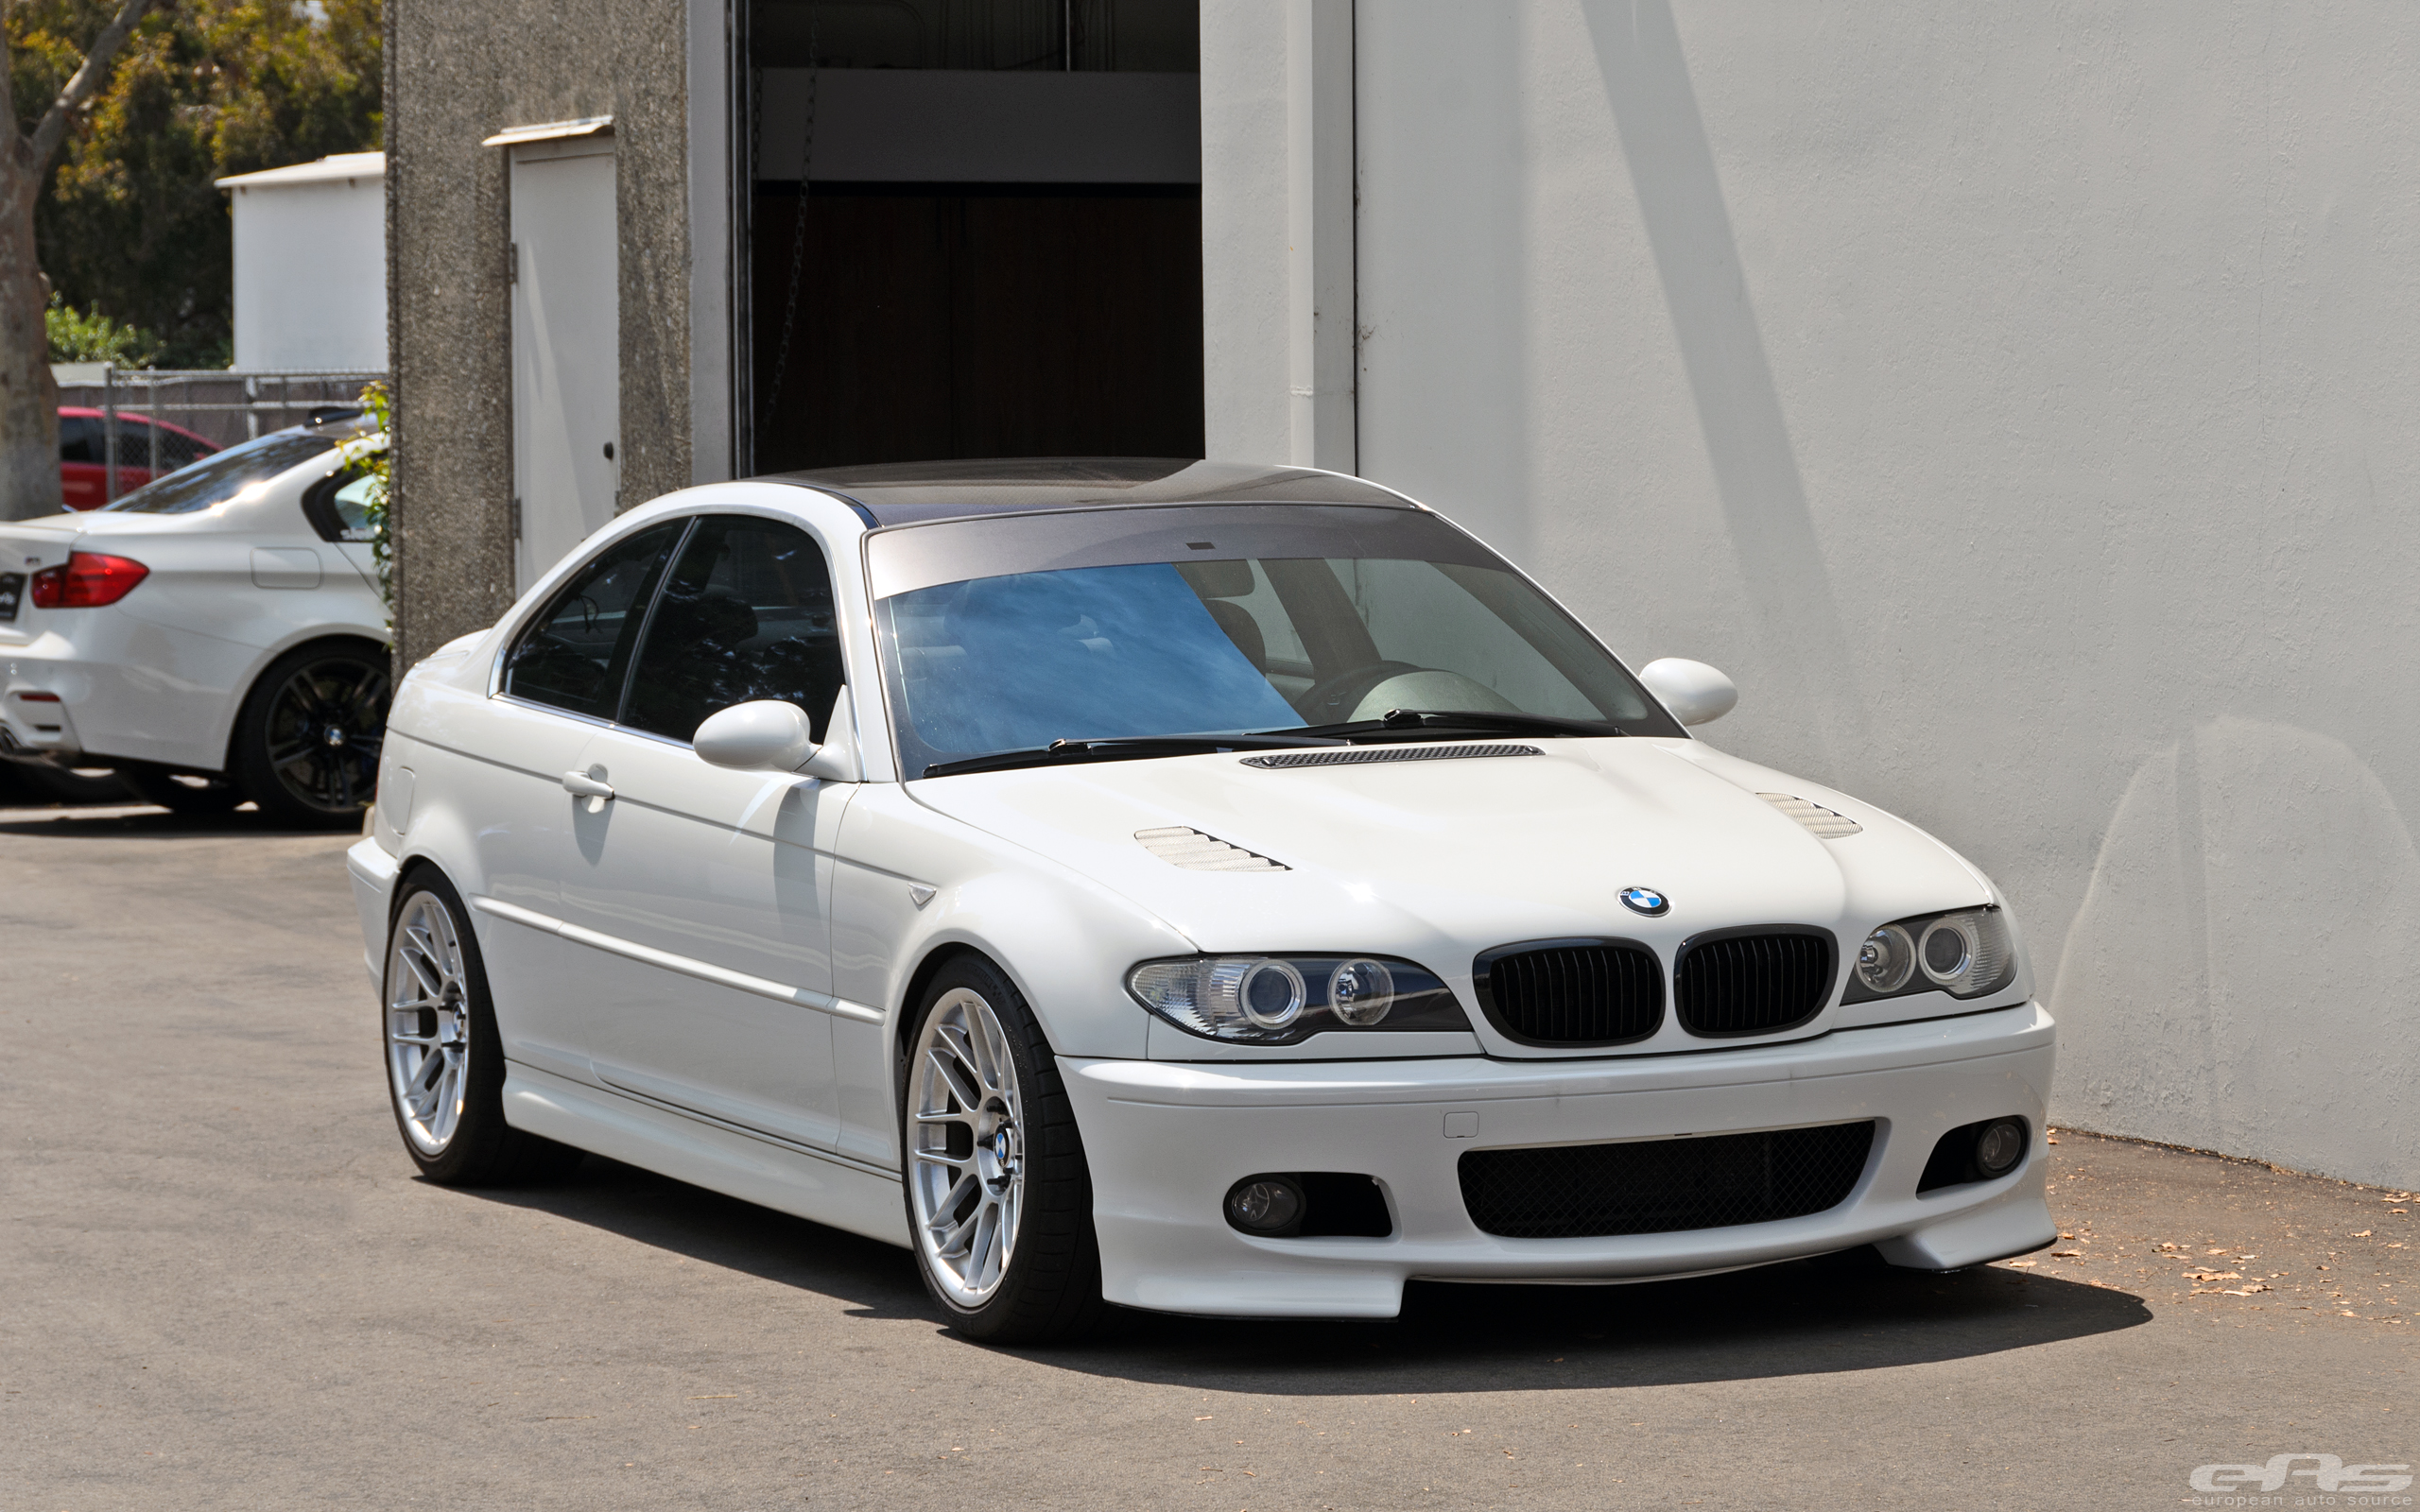 Clean Bmw E46 330ci Has More Than One Ace Up Its Sleeve Autoevolution